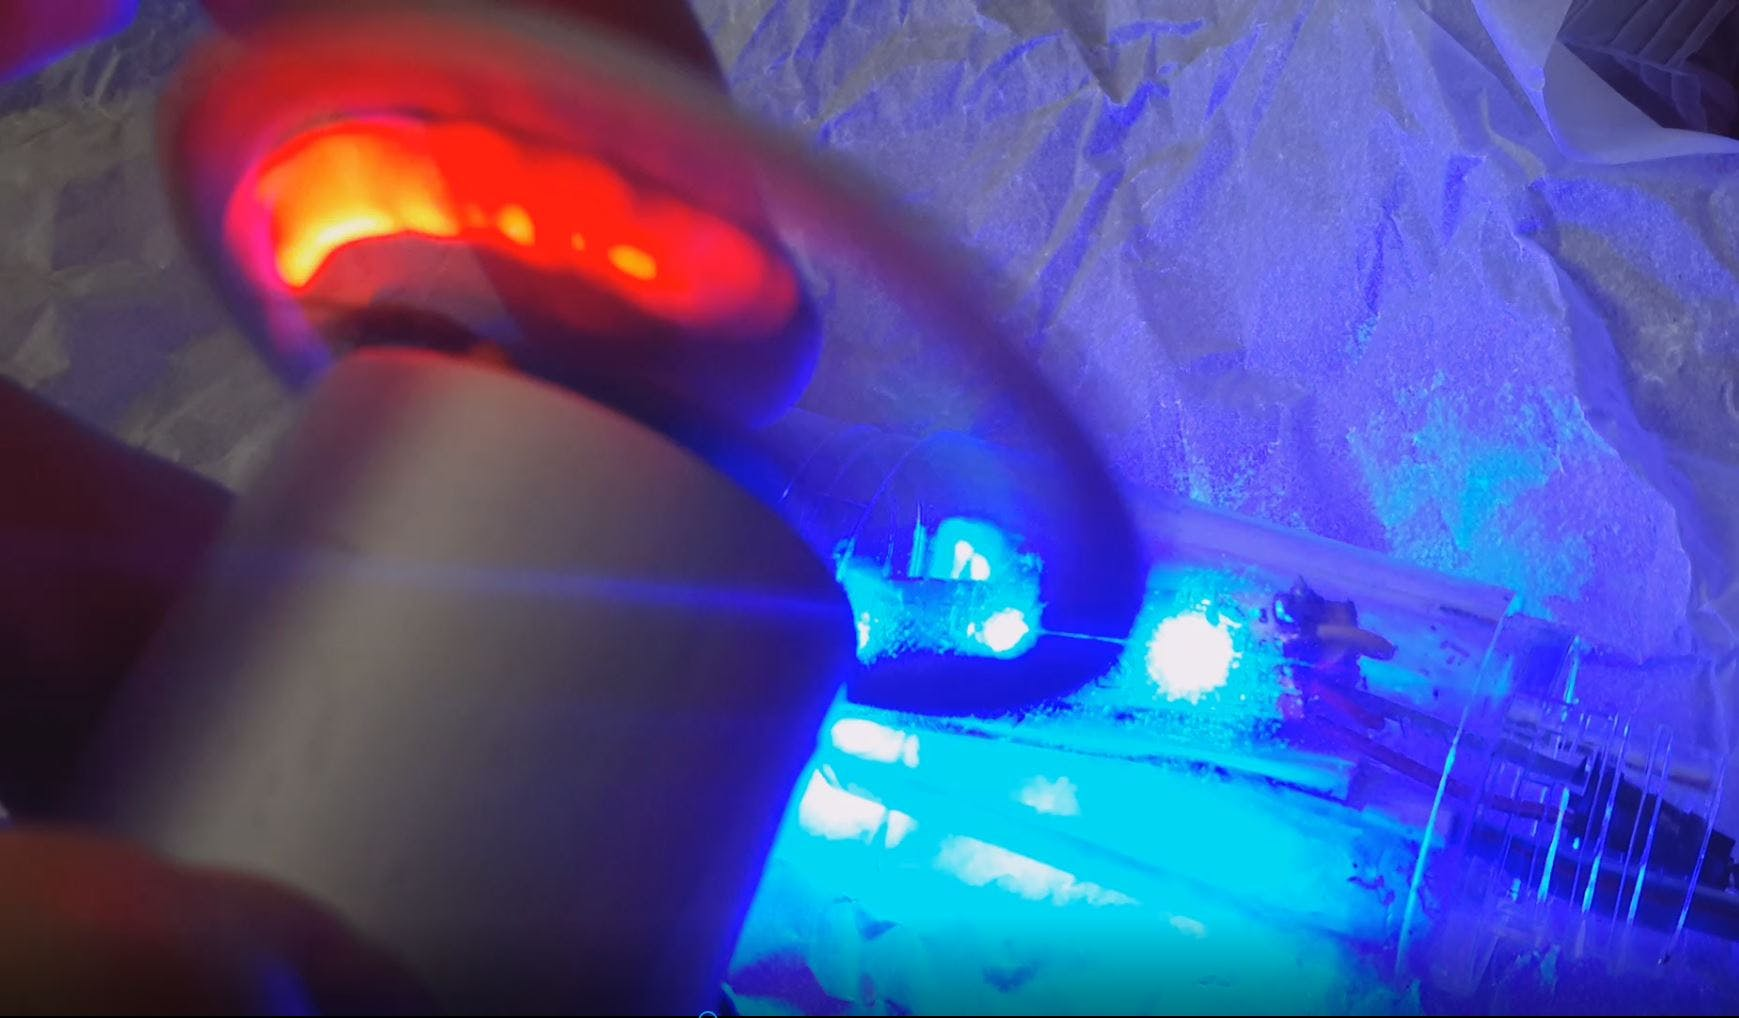 Motor led spin test success with flickering yellow, red light diode